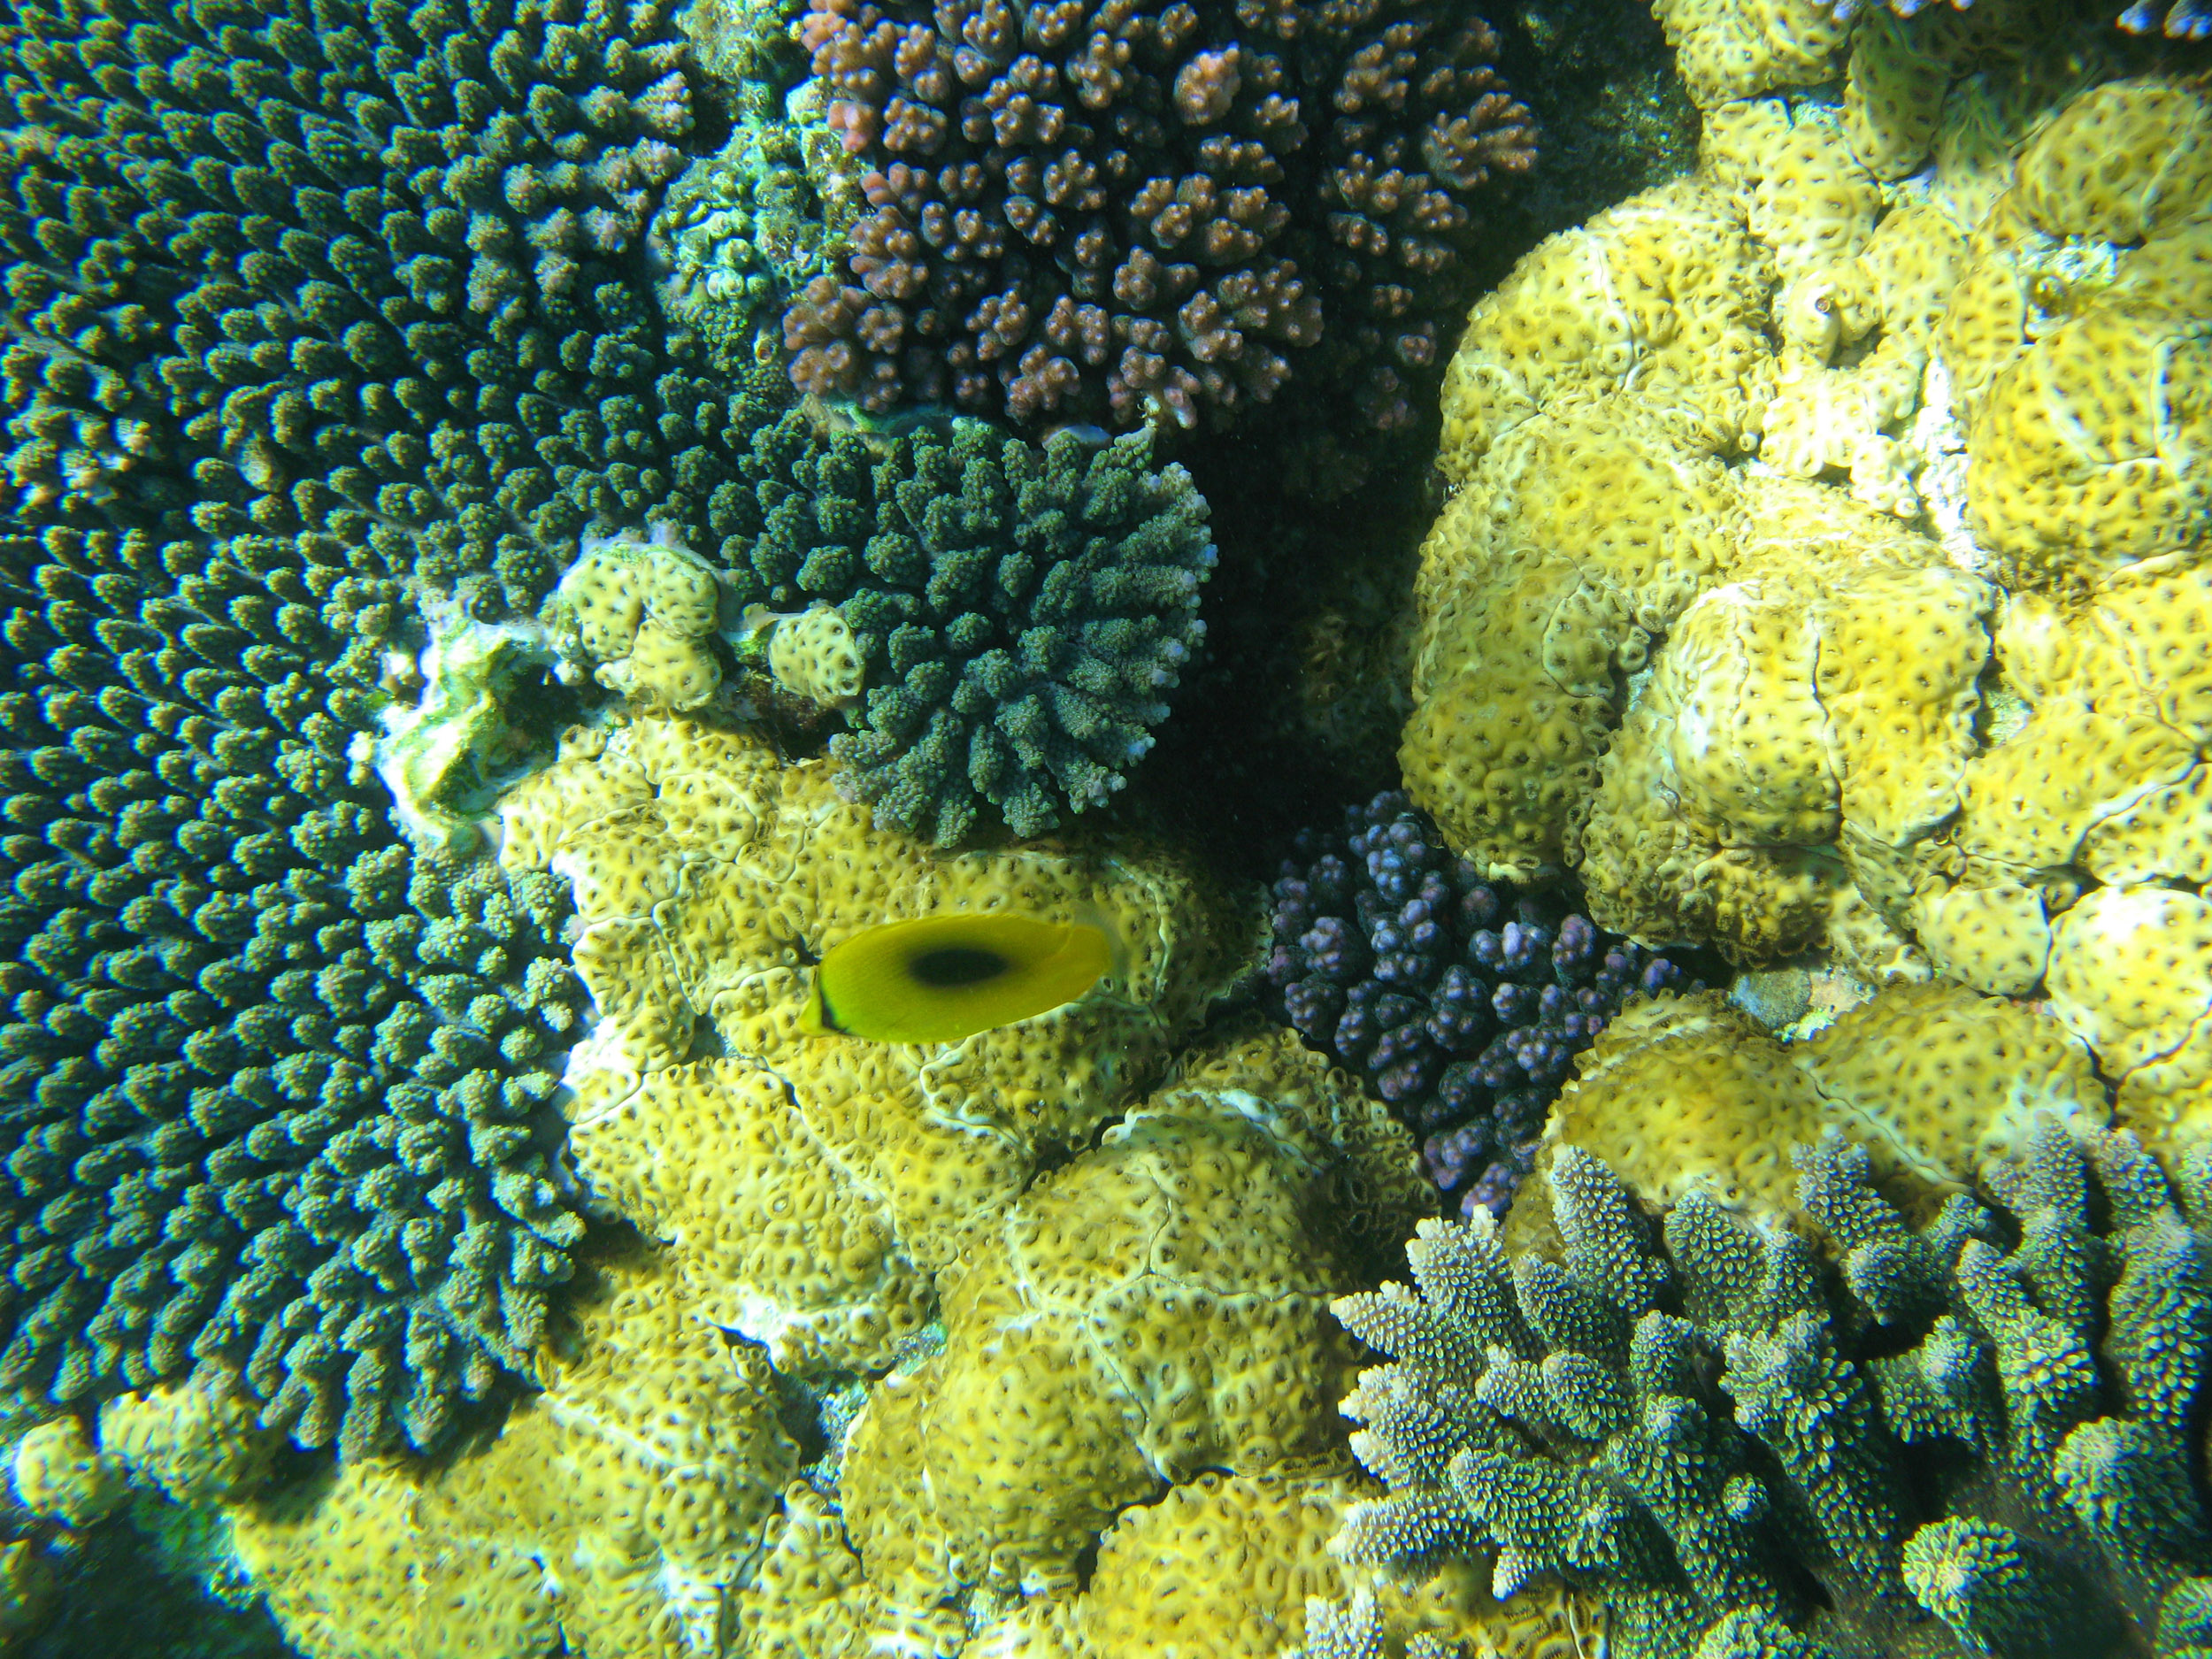 Coral reef fish yellow - photo#16